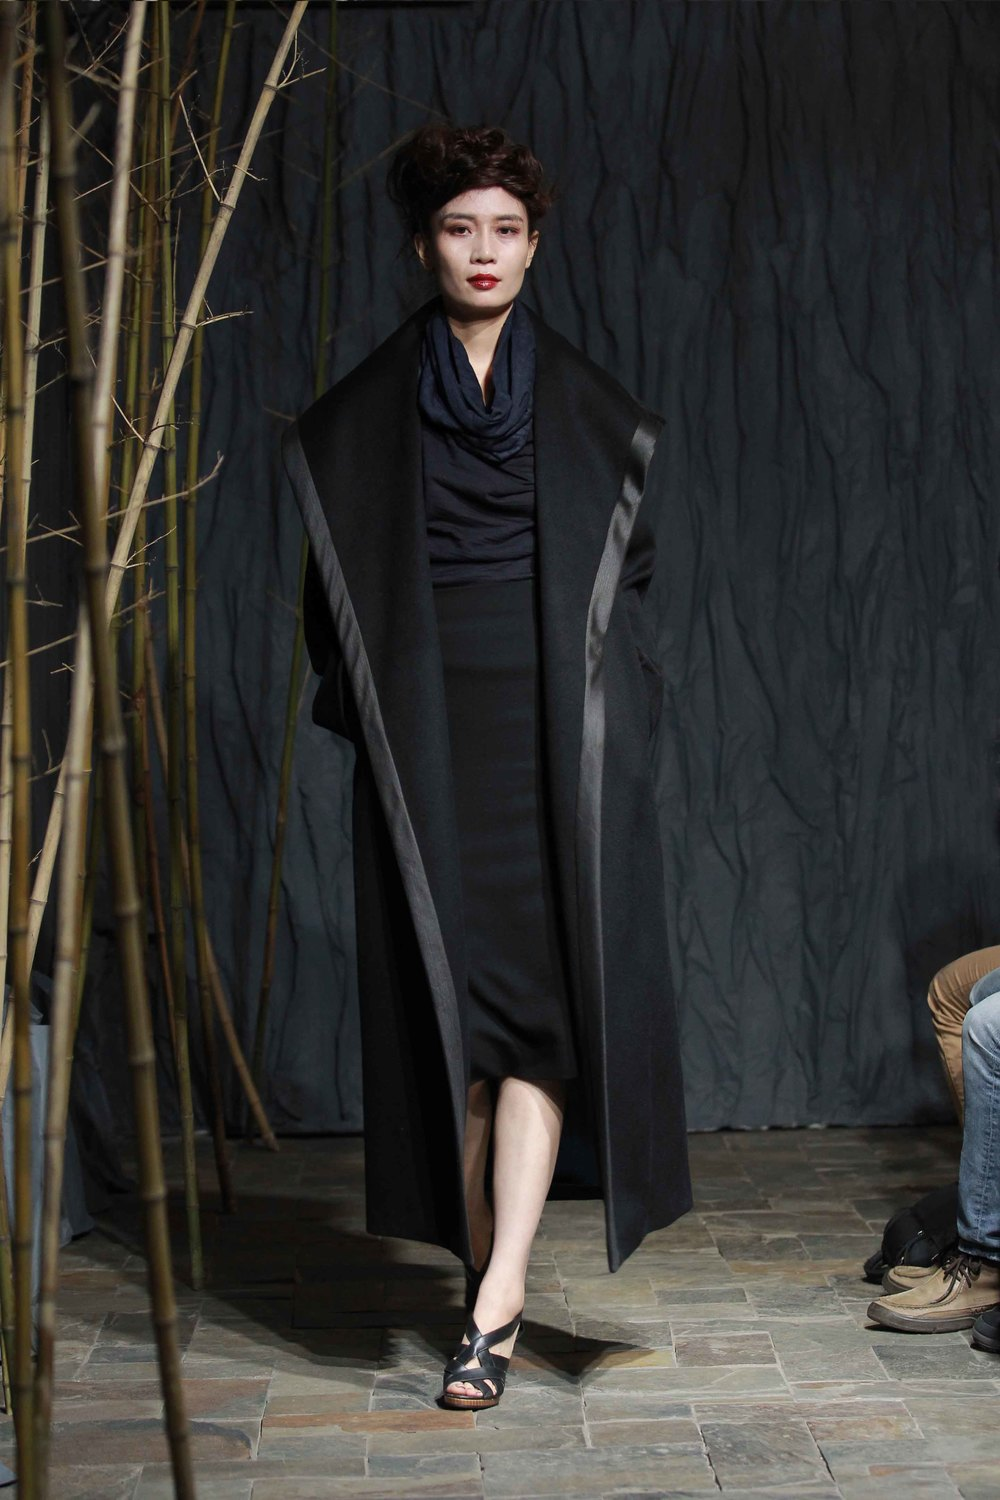 Generous black wool coat,overstitched with tea-silk trim// midnight-blue andblack hand-dyed woollen jersey top paired with tubular hood// black pencilskirt with leather trim